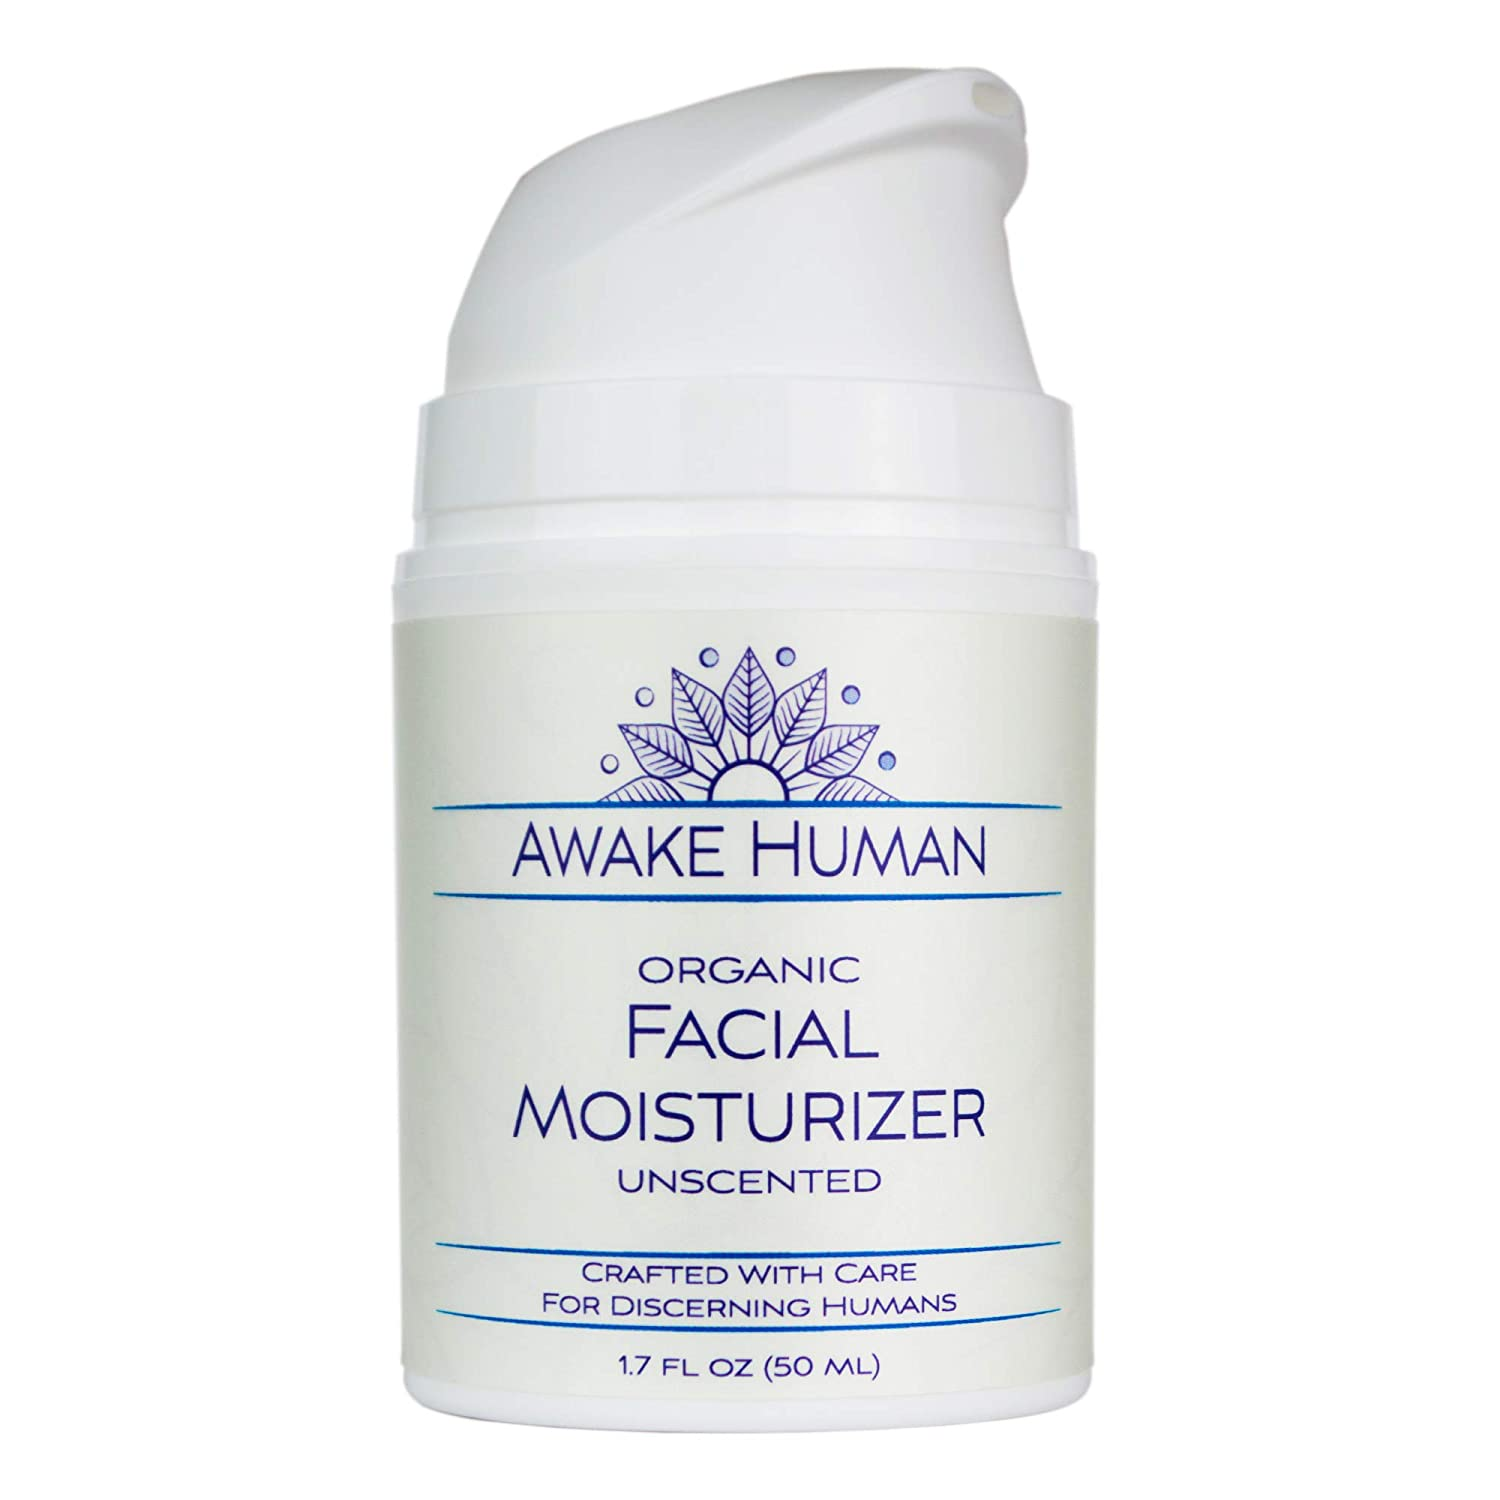 Organic Face Moisturizer, Unscented Natural Face Cream for Every Skin Type, Mostly Aloe, Jojoba, Green Tea, Shea Butter, Sweet Almond, 1.7 Ounces